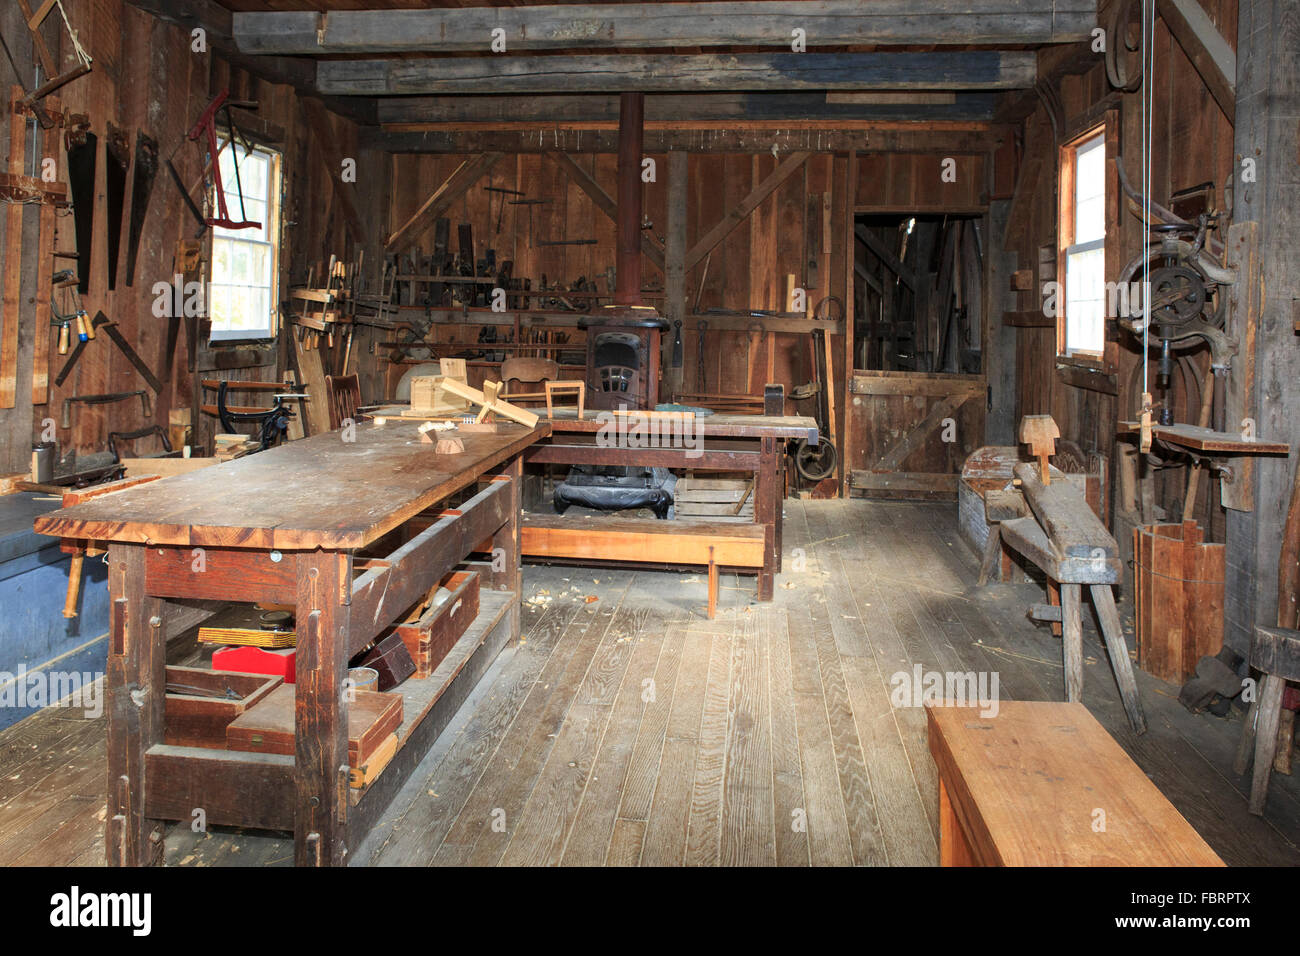 Woodworking Shop With Tools Stock Photo 93335898 Alamy